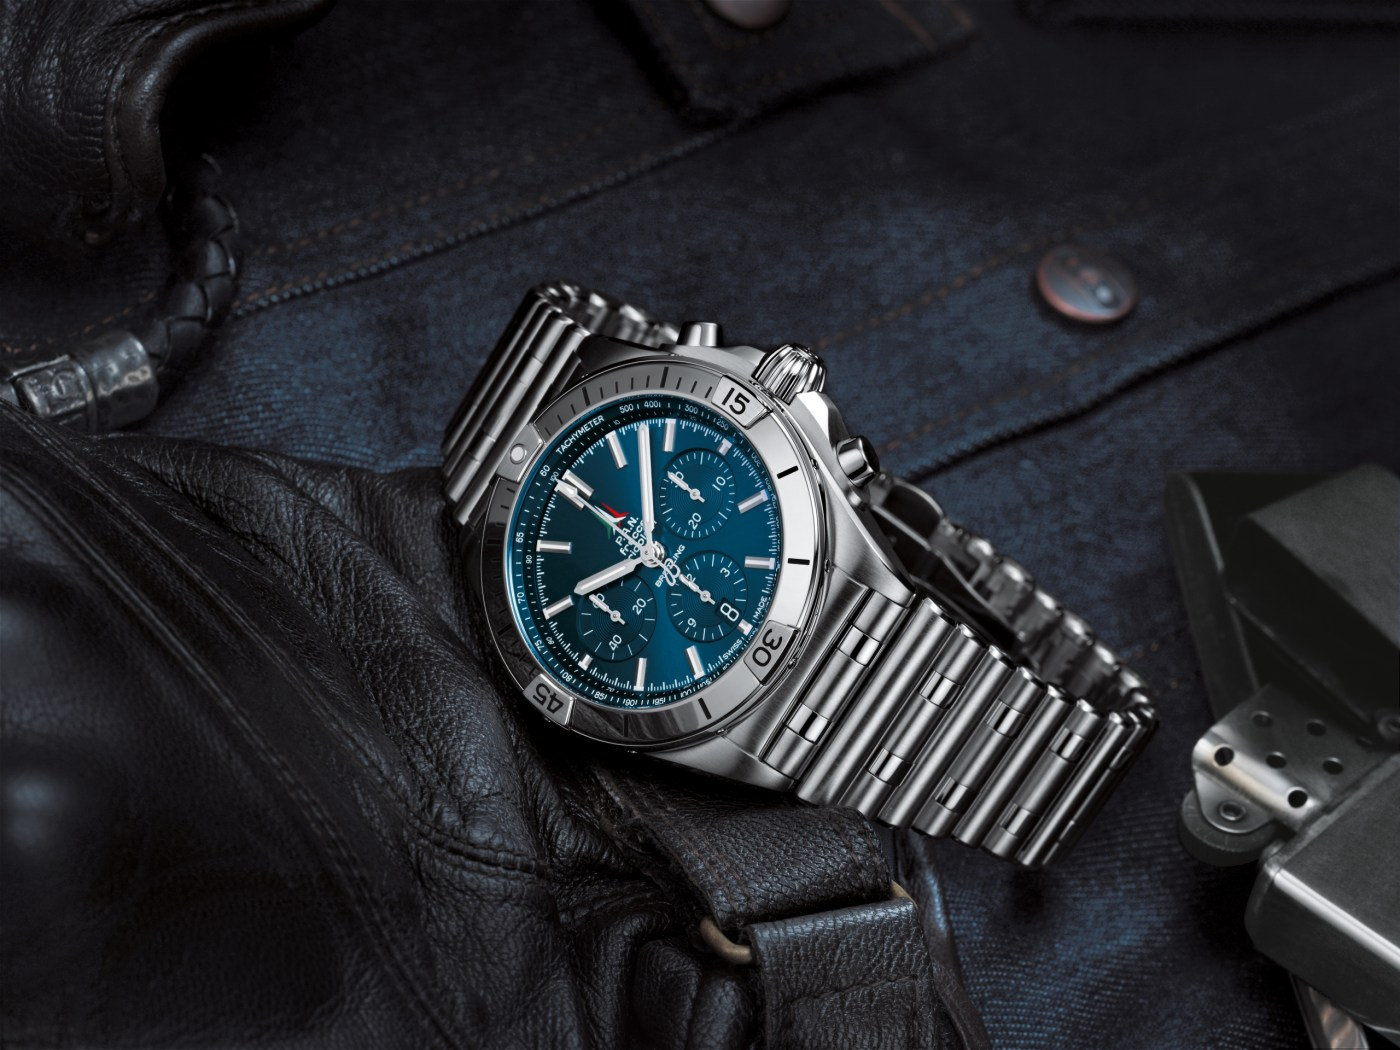 Chronomat B01 42 Frecce Tricolori Limited Edition with a blue dial and tone-on-tone chronograph counters